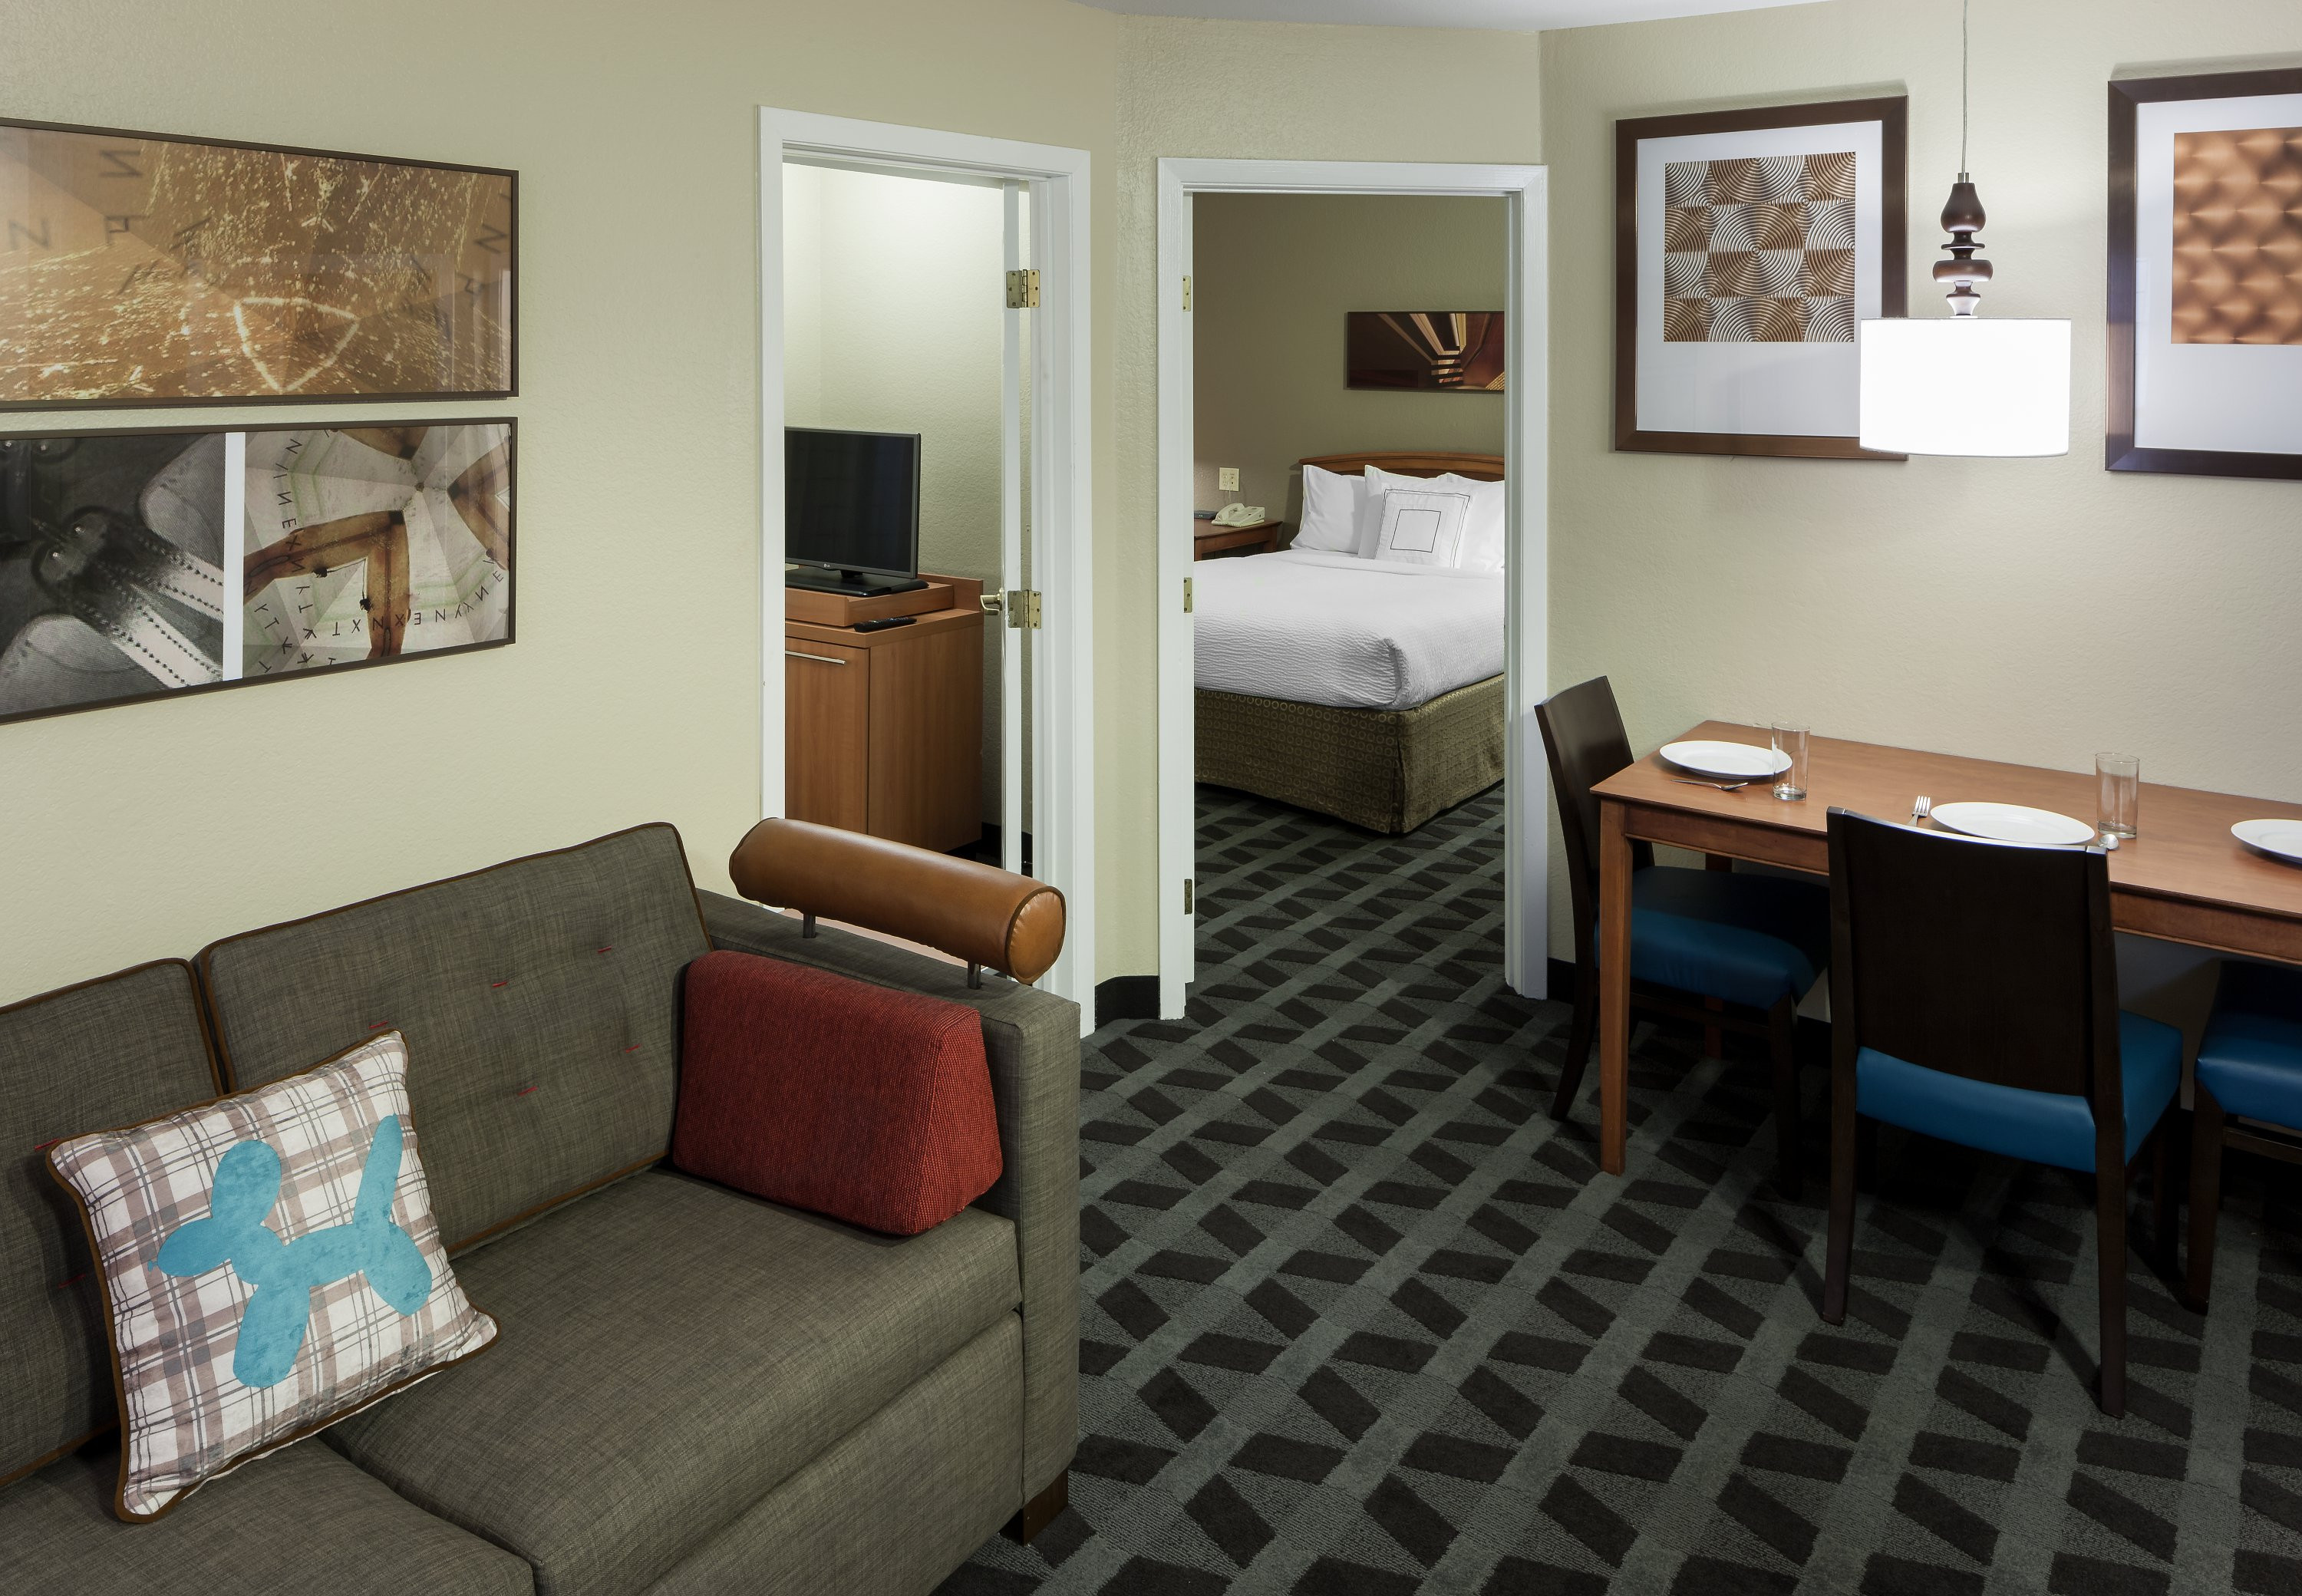 Best ideas about Hotels With Two Bedroom Suites . Save or Pin Hotels Near Six Flags In Arlington TX Now.